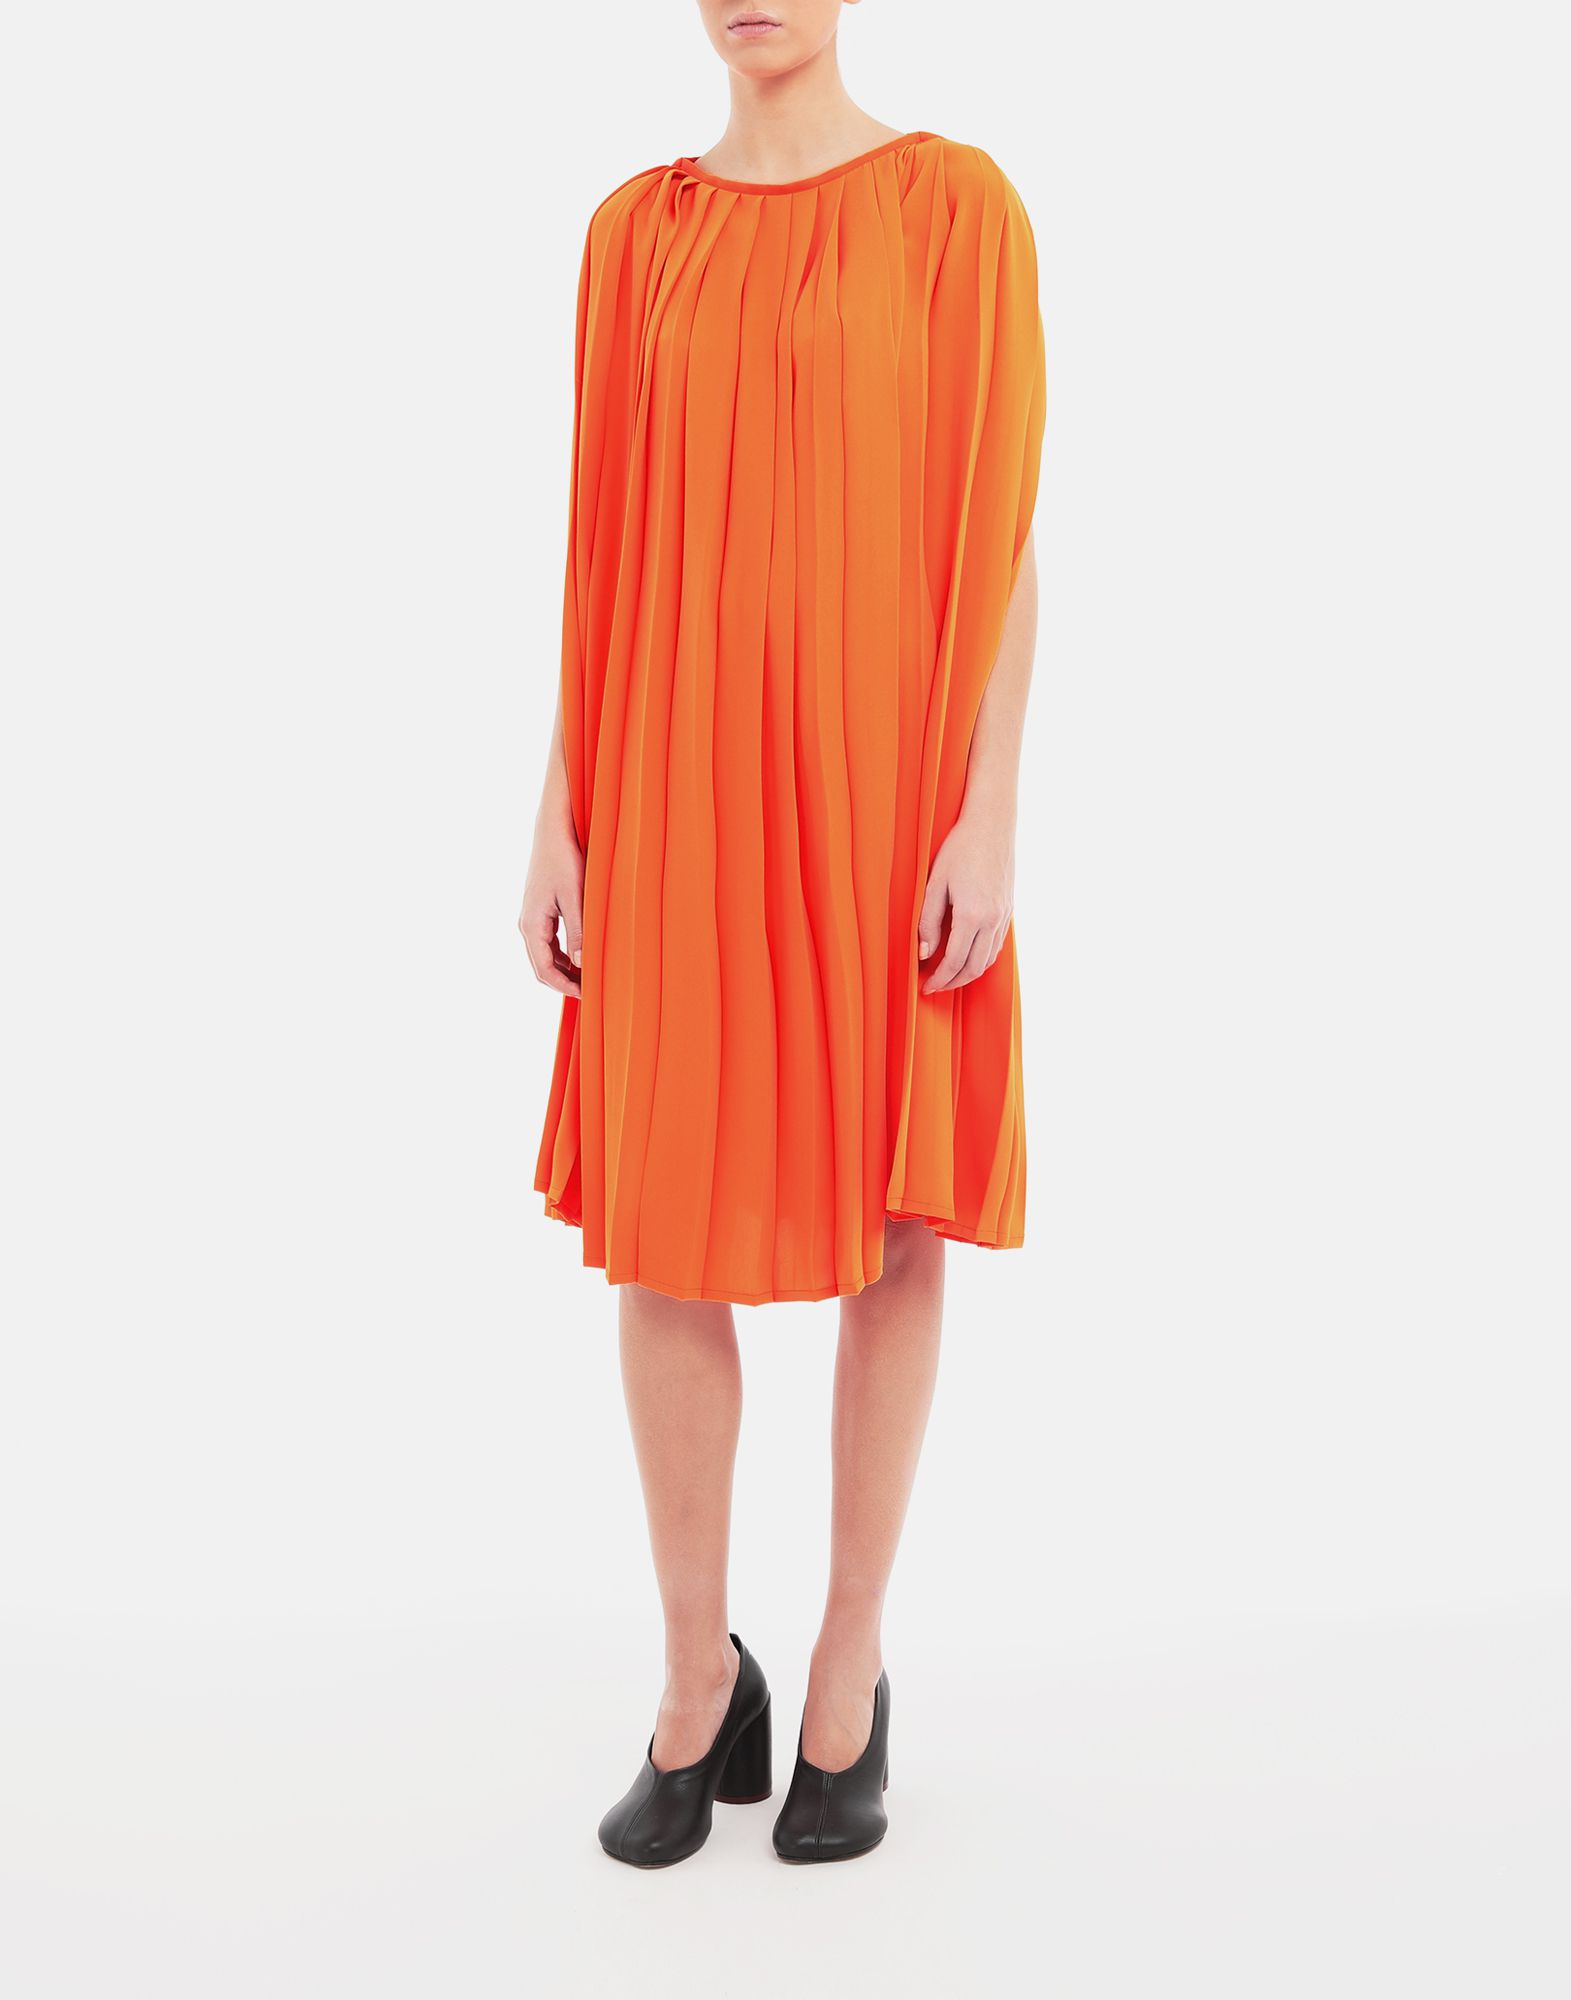 MM6 MAISON MARGIELA Pleated dress Dress Woman r